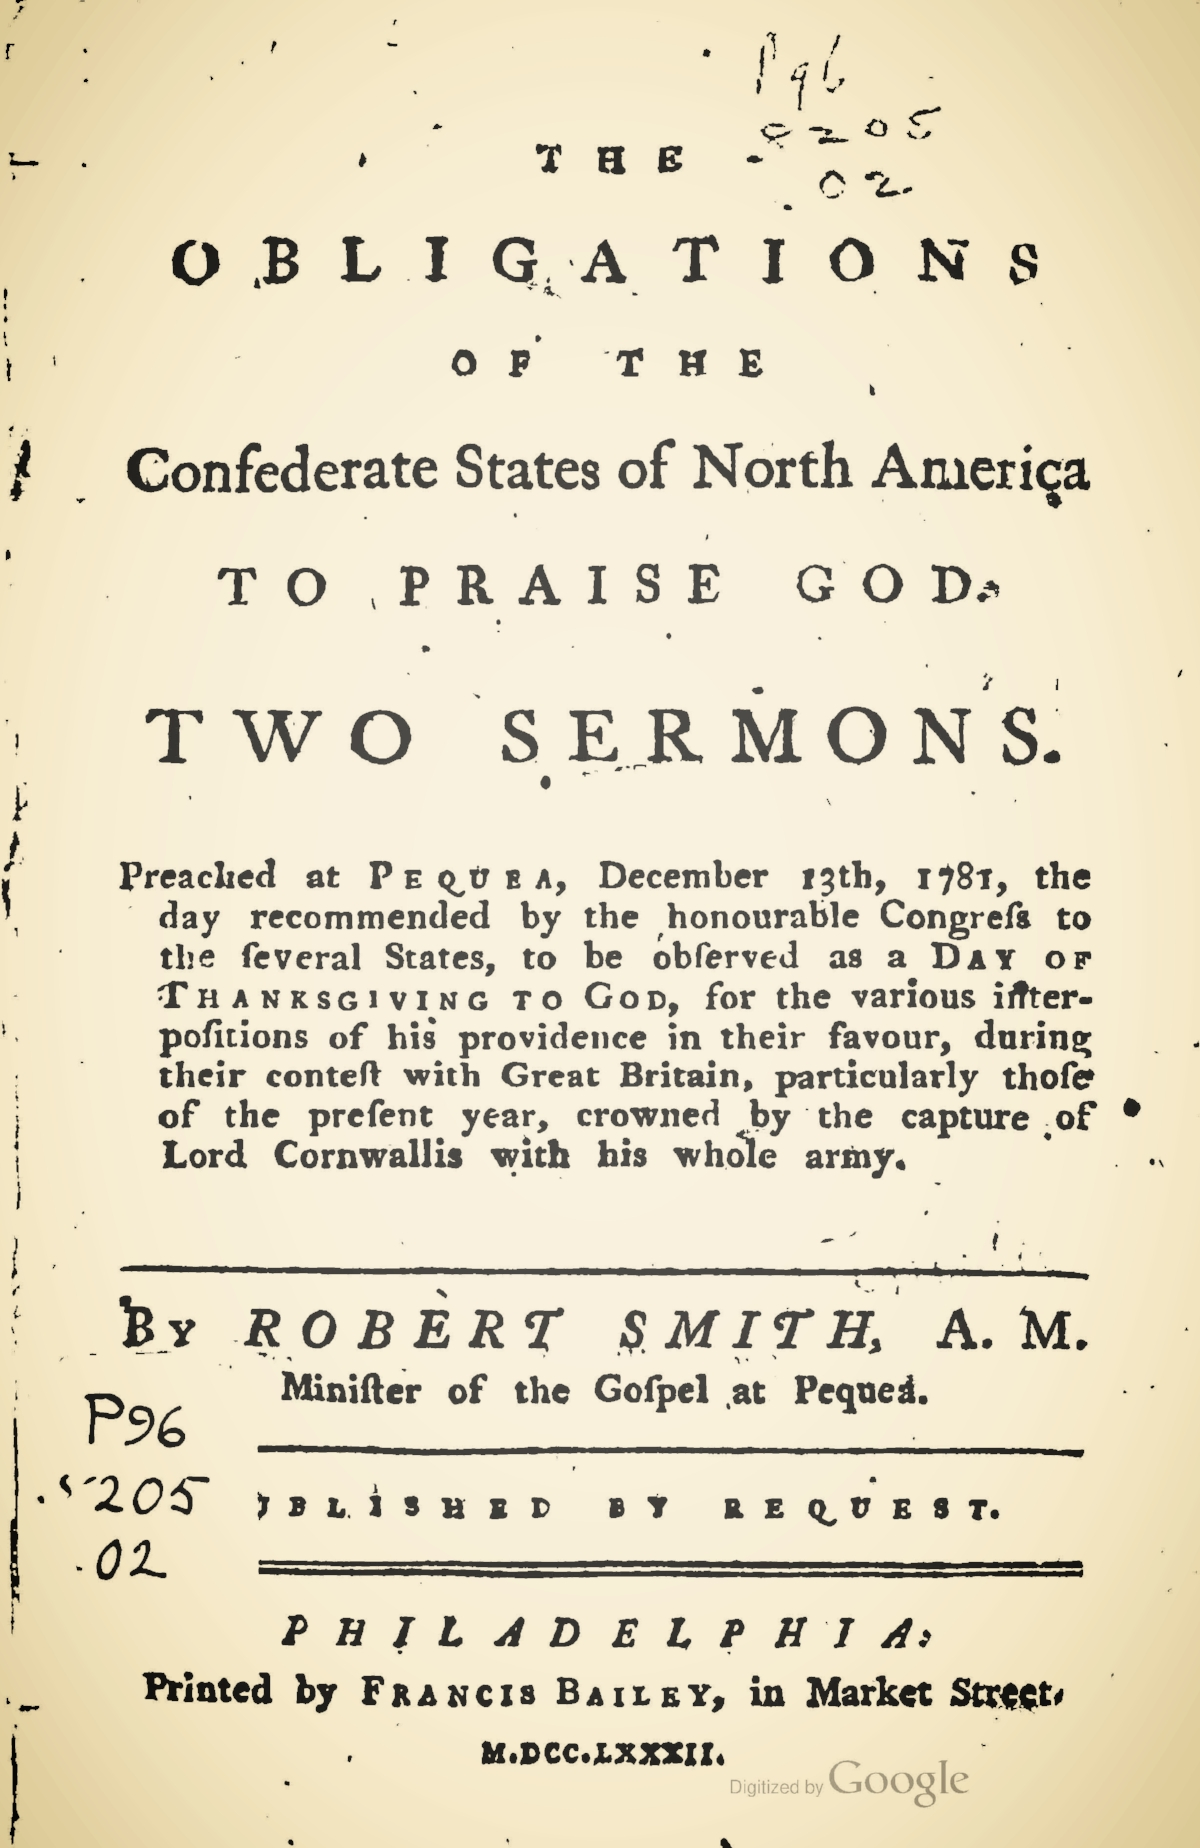 Smith, Robert, The Obligations of the Confederate States of North America to Praise God Two Sermons Title Page.jpg